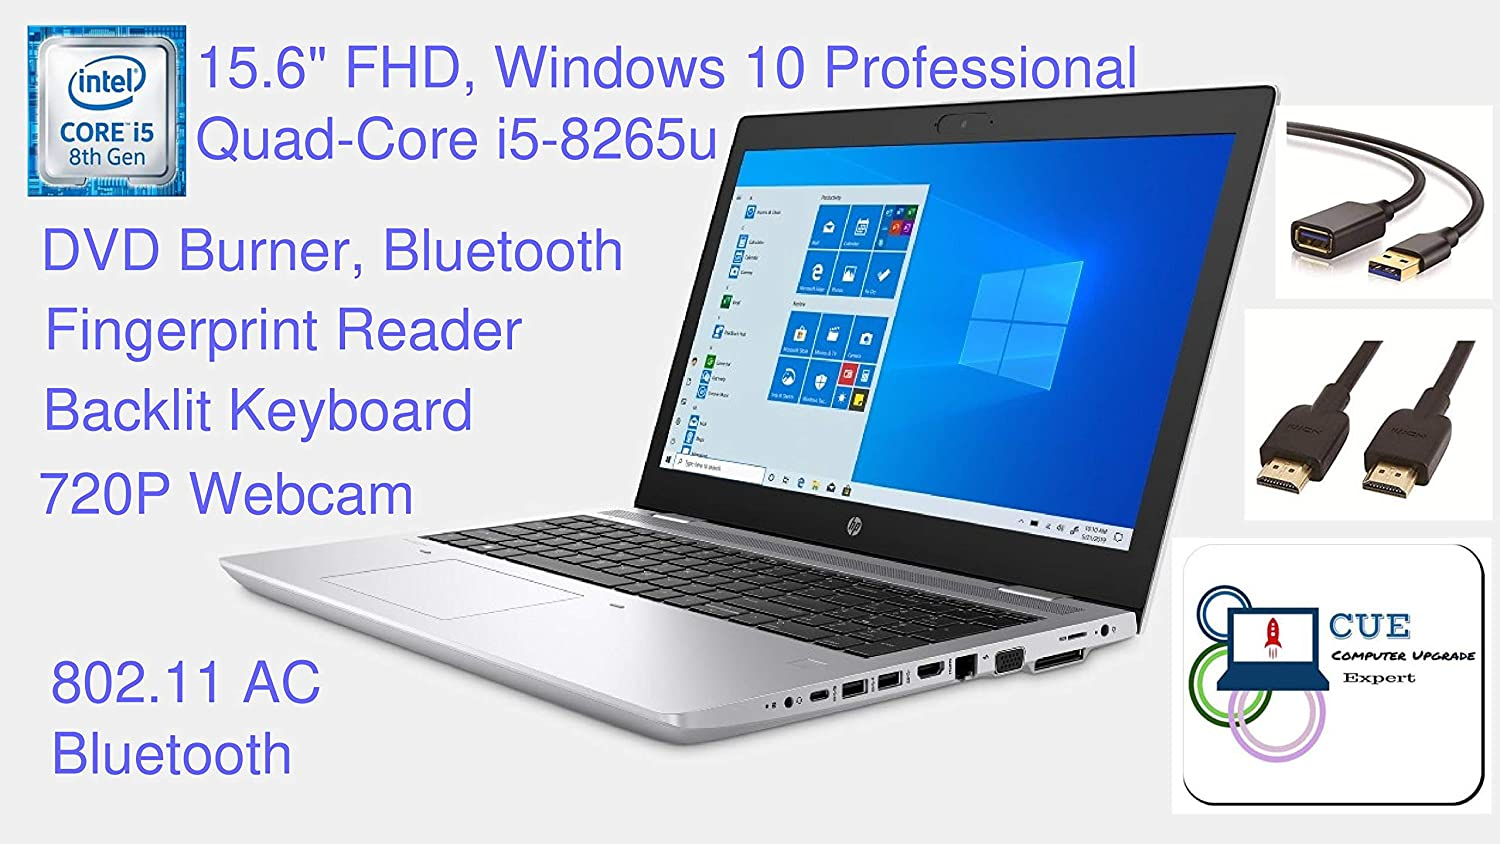 "HP Probook 650 G5 Premium Business Laptop, 15.6"" FHD, Quad Core i5-8265u, DVD Burner, FP Reader, BT, HDMI, Win10 Professional + CUE Accessories (8GB DDR4, 256GB SSD)"